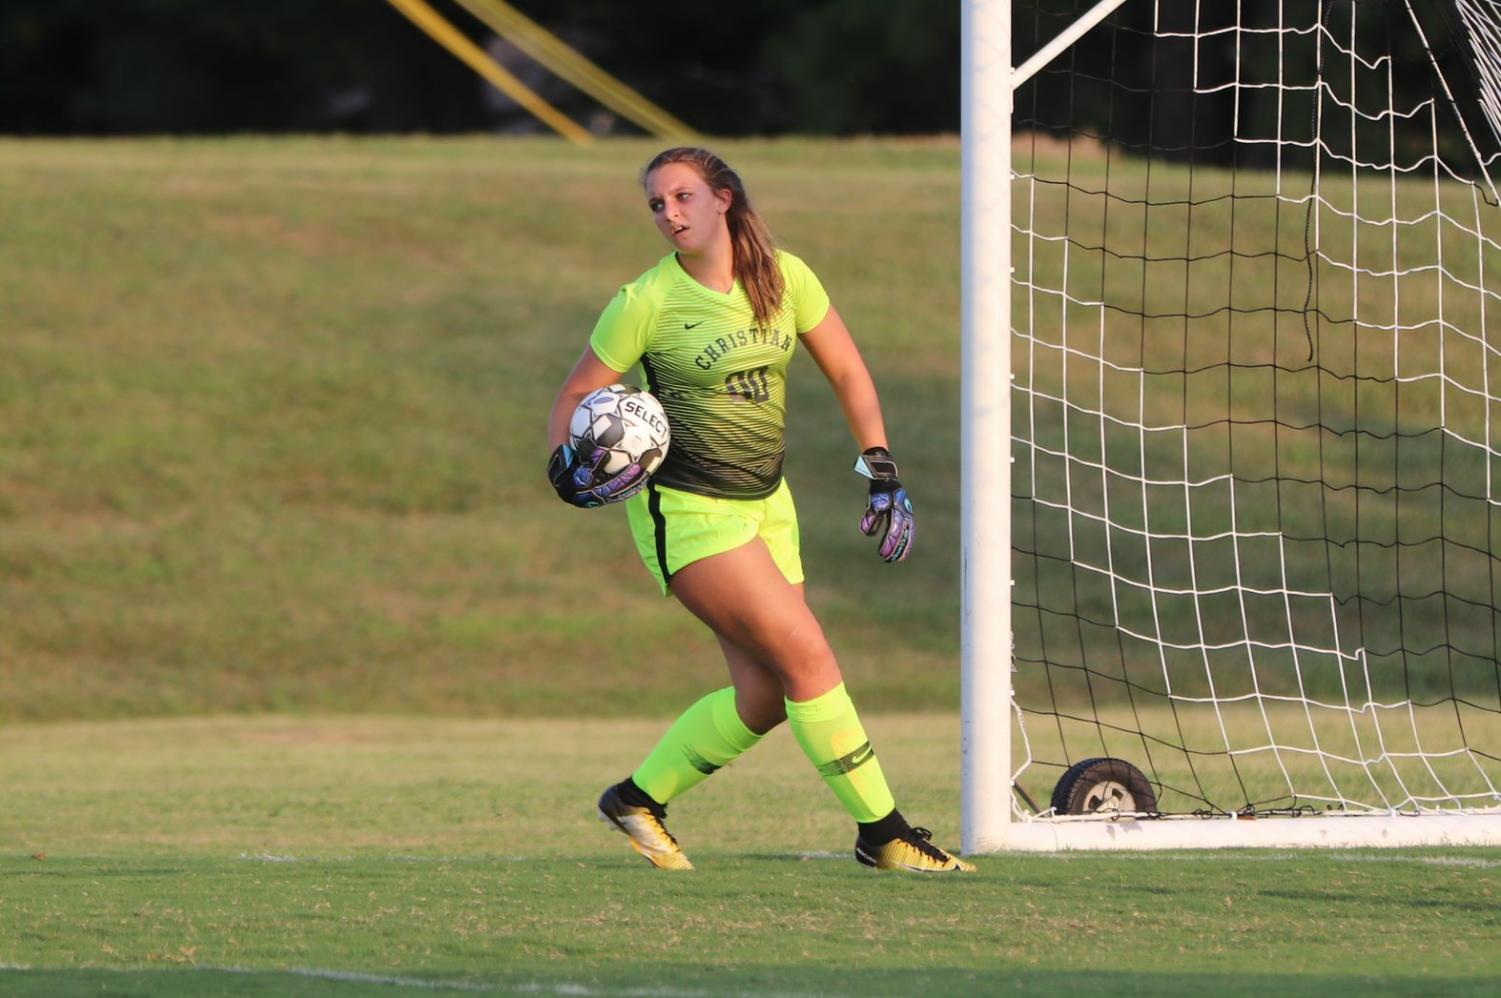 Hadley Whipple, 10, made key saves in the Eagles victory over Model.